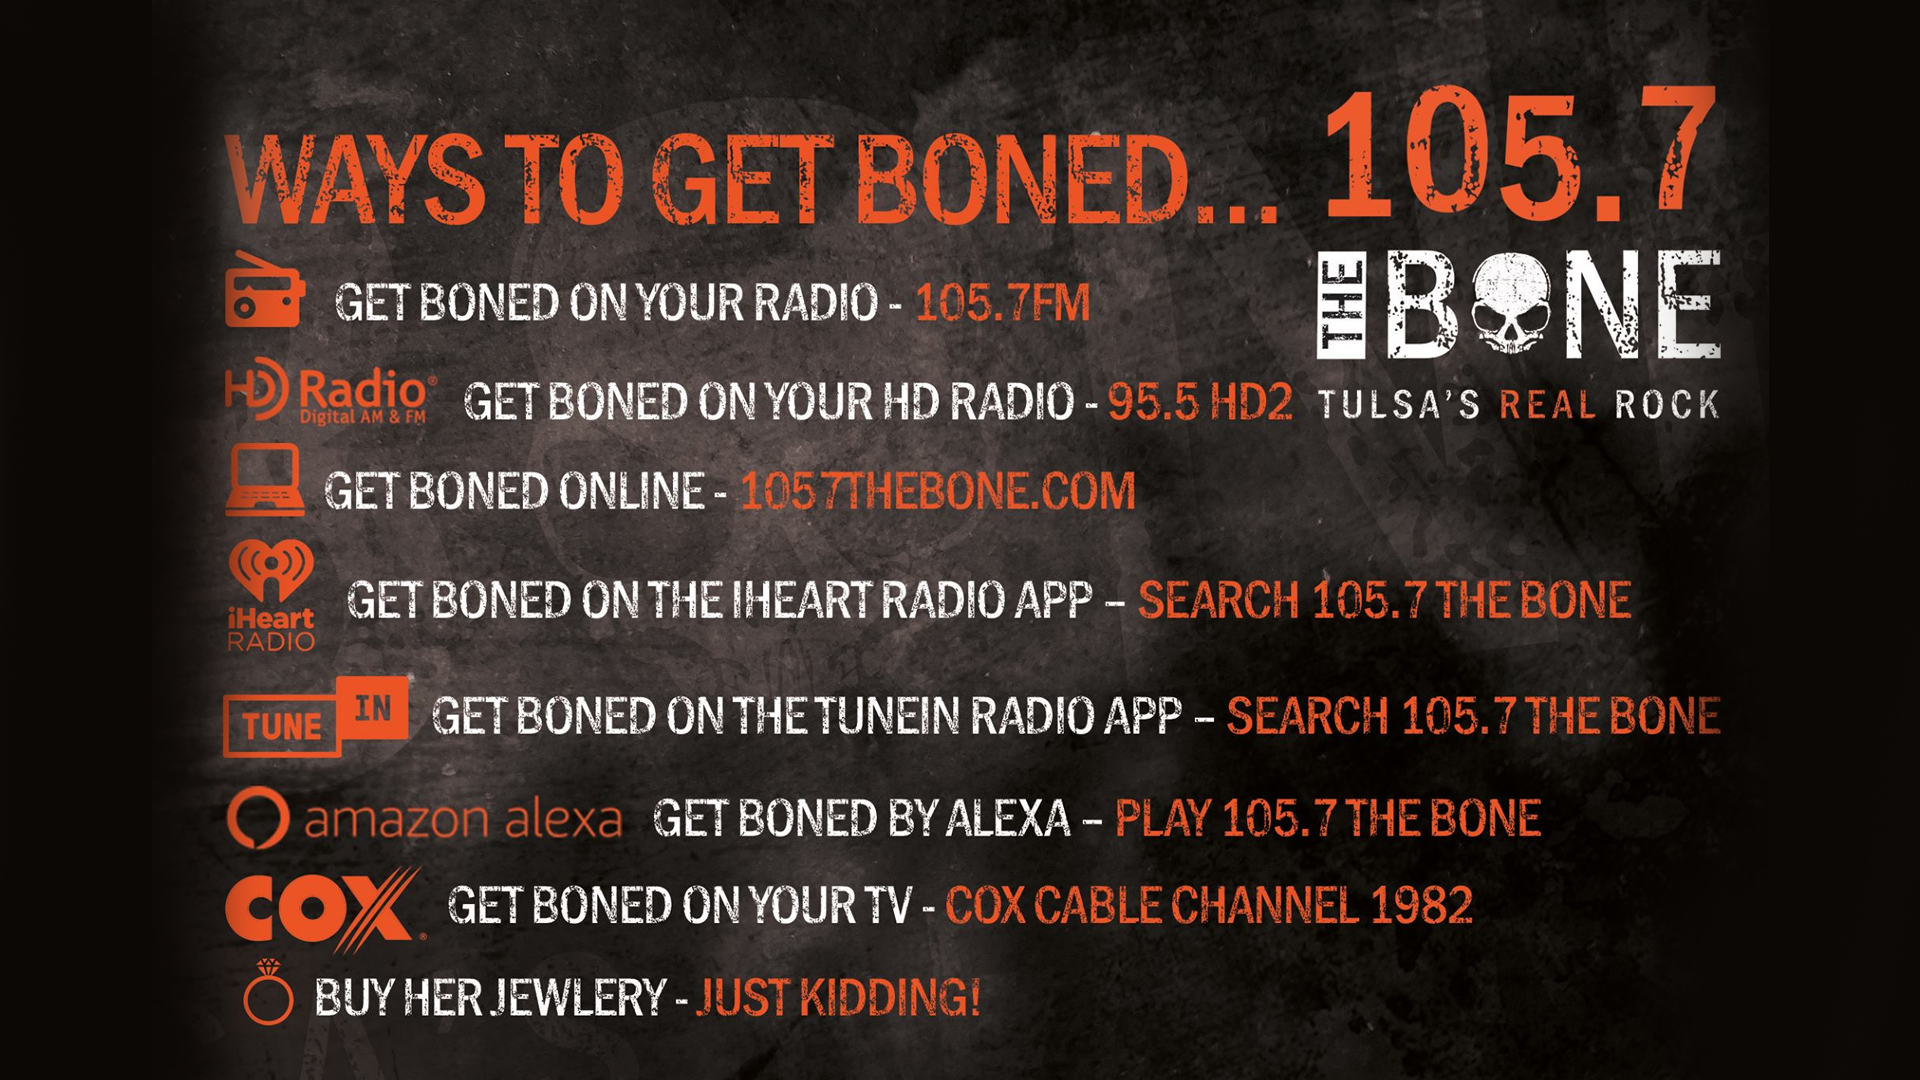 Get Boned with 105.7 The Bone